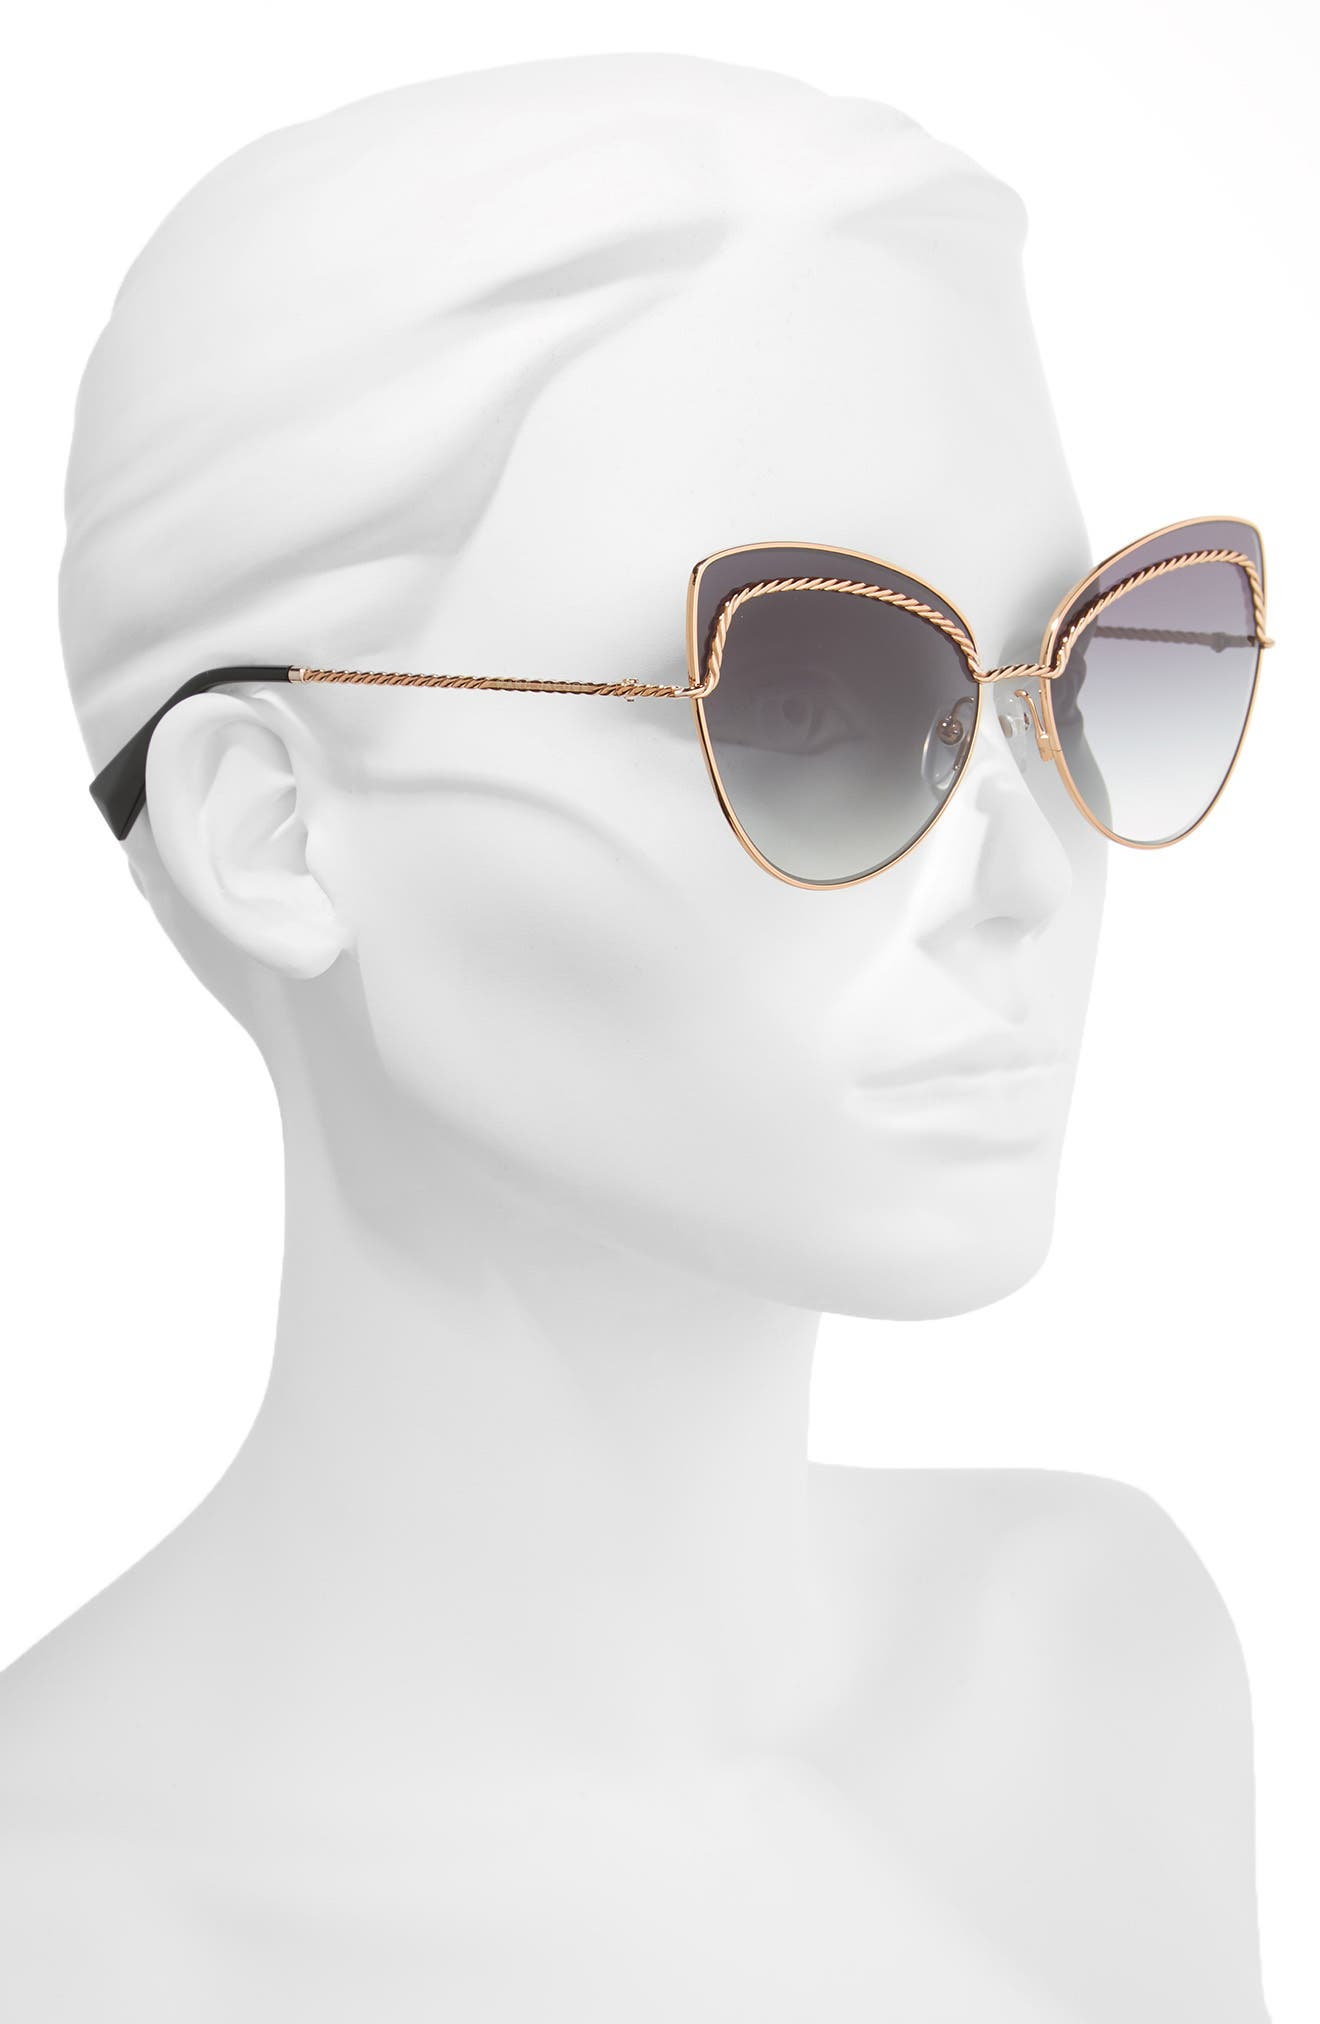 61mm Butterfly Sunglasses,                             Alternate thumbnail 2, color,                             710